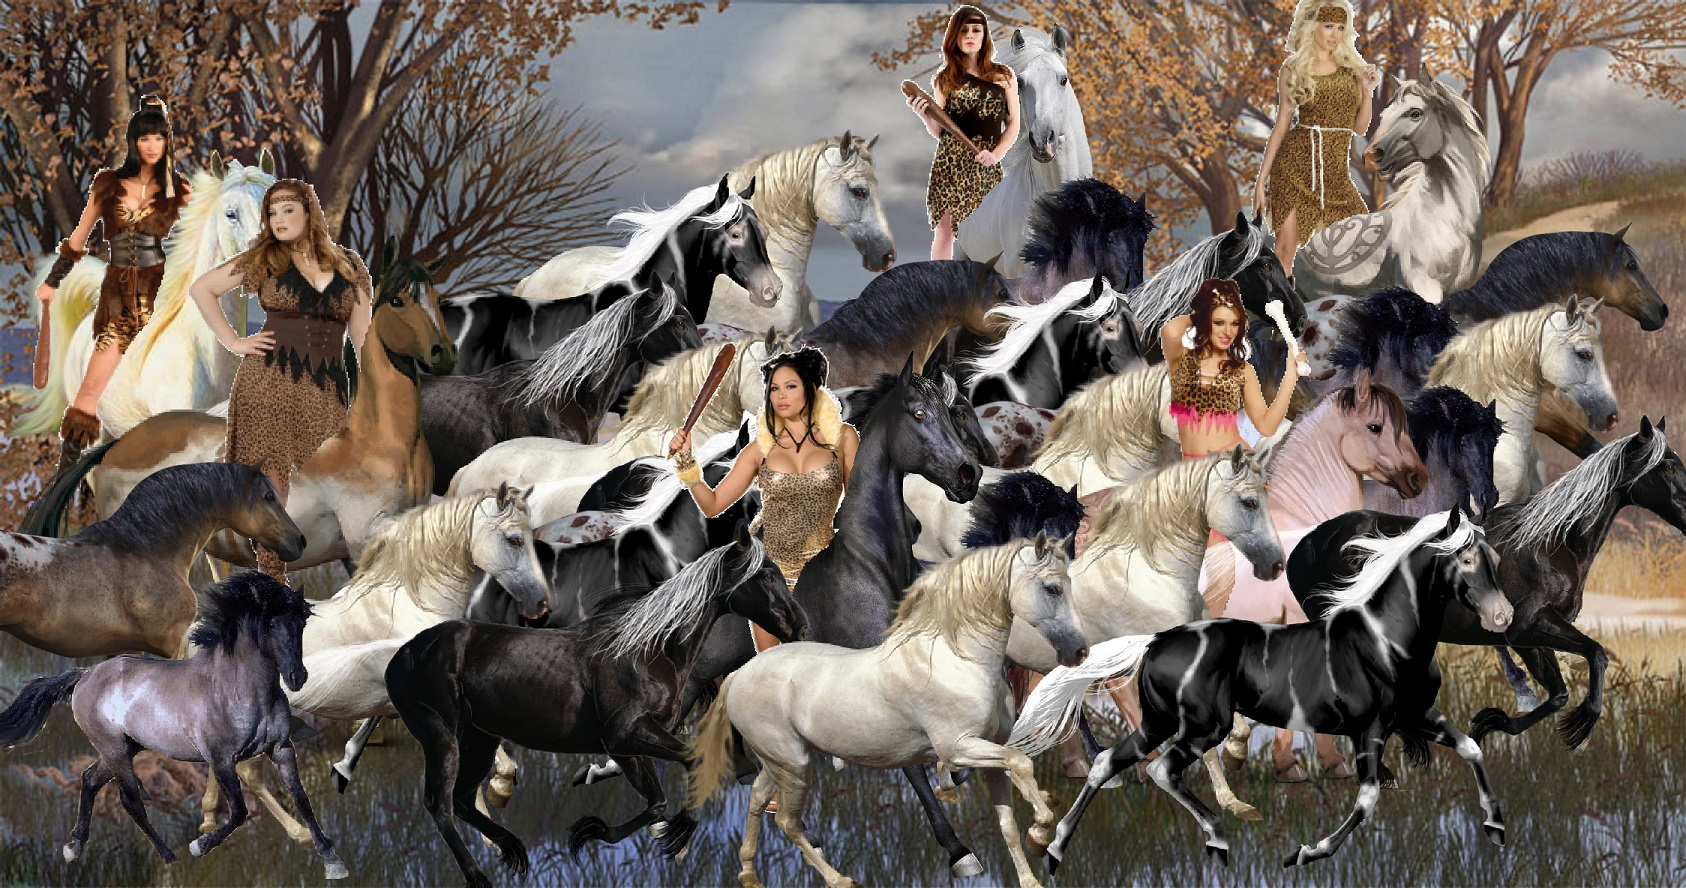 A Group of Hot Cavewomen taming a Large Herd of Wild Horses 1686x888